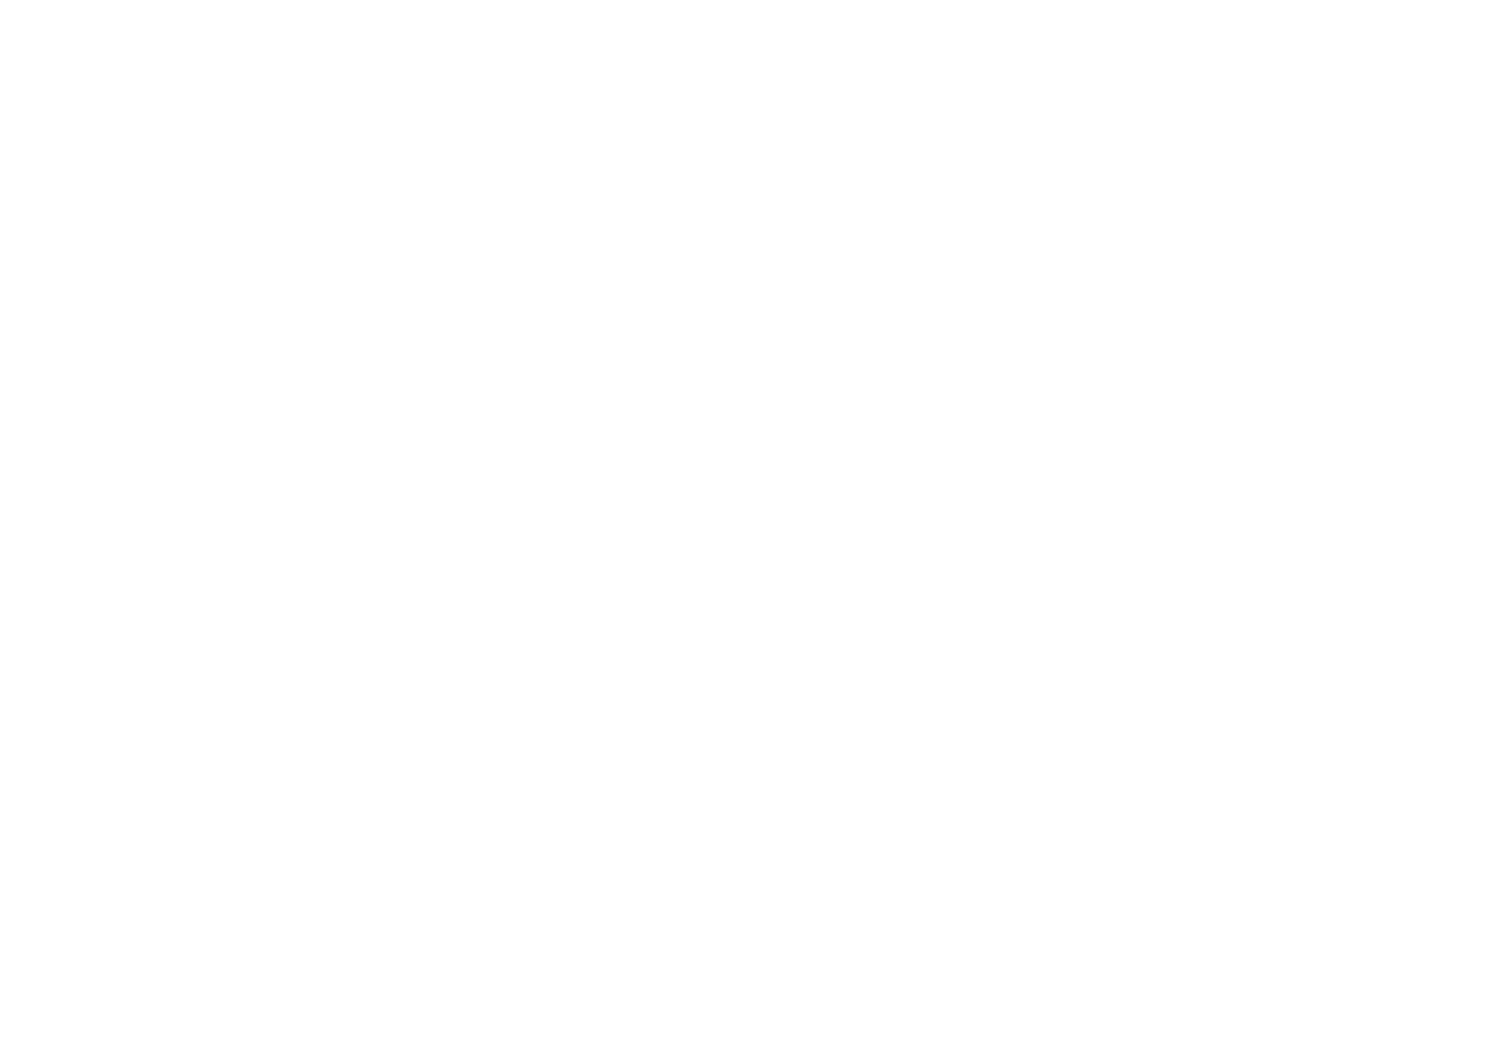 The Rustic Wood Project